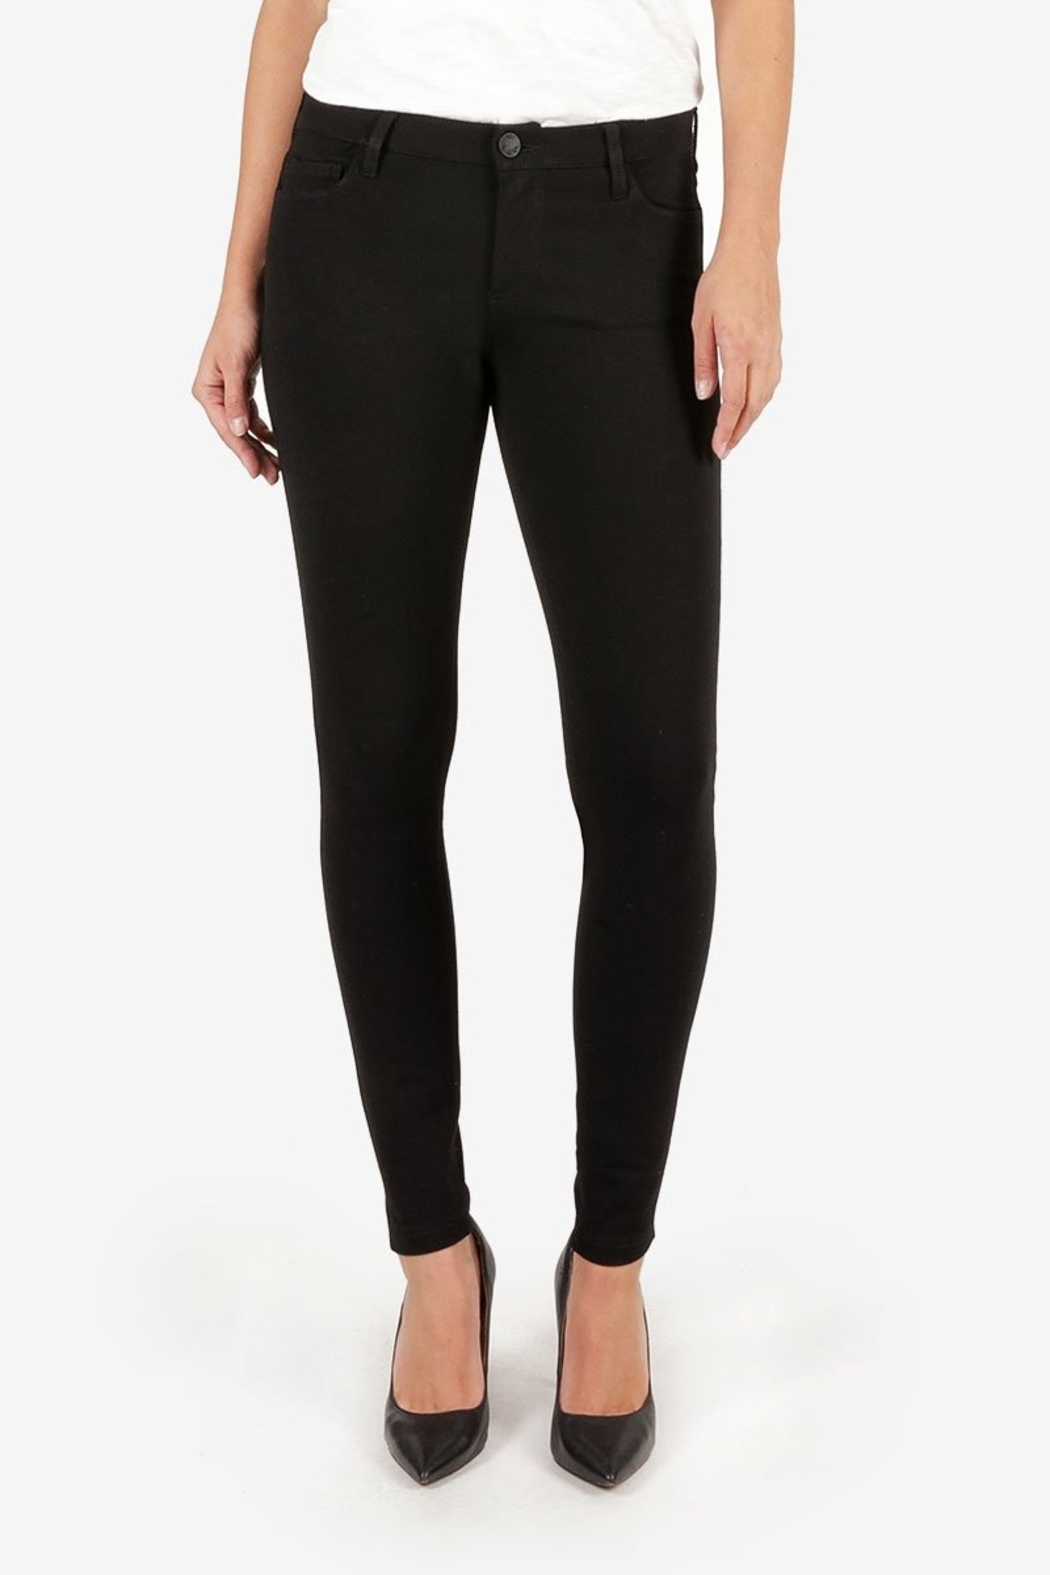 Kut from the Kloth MIA HIGHRISE SKINNY - Main Image